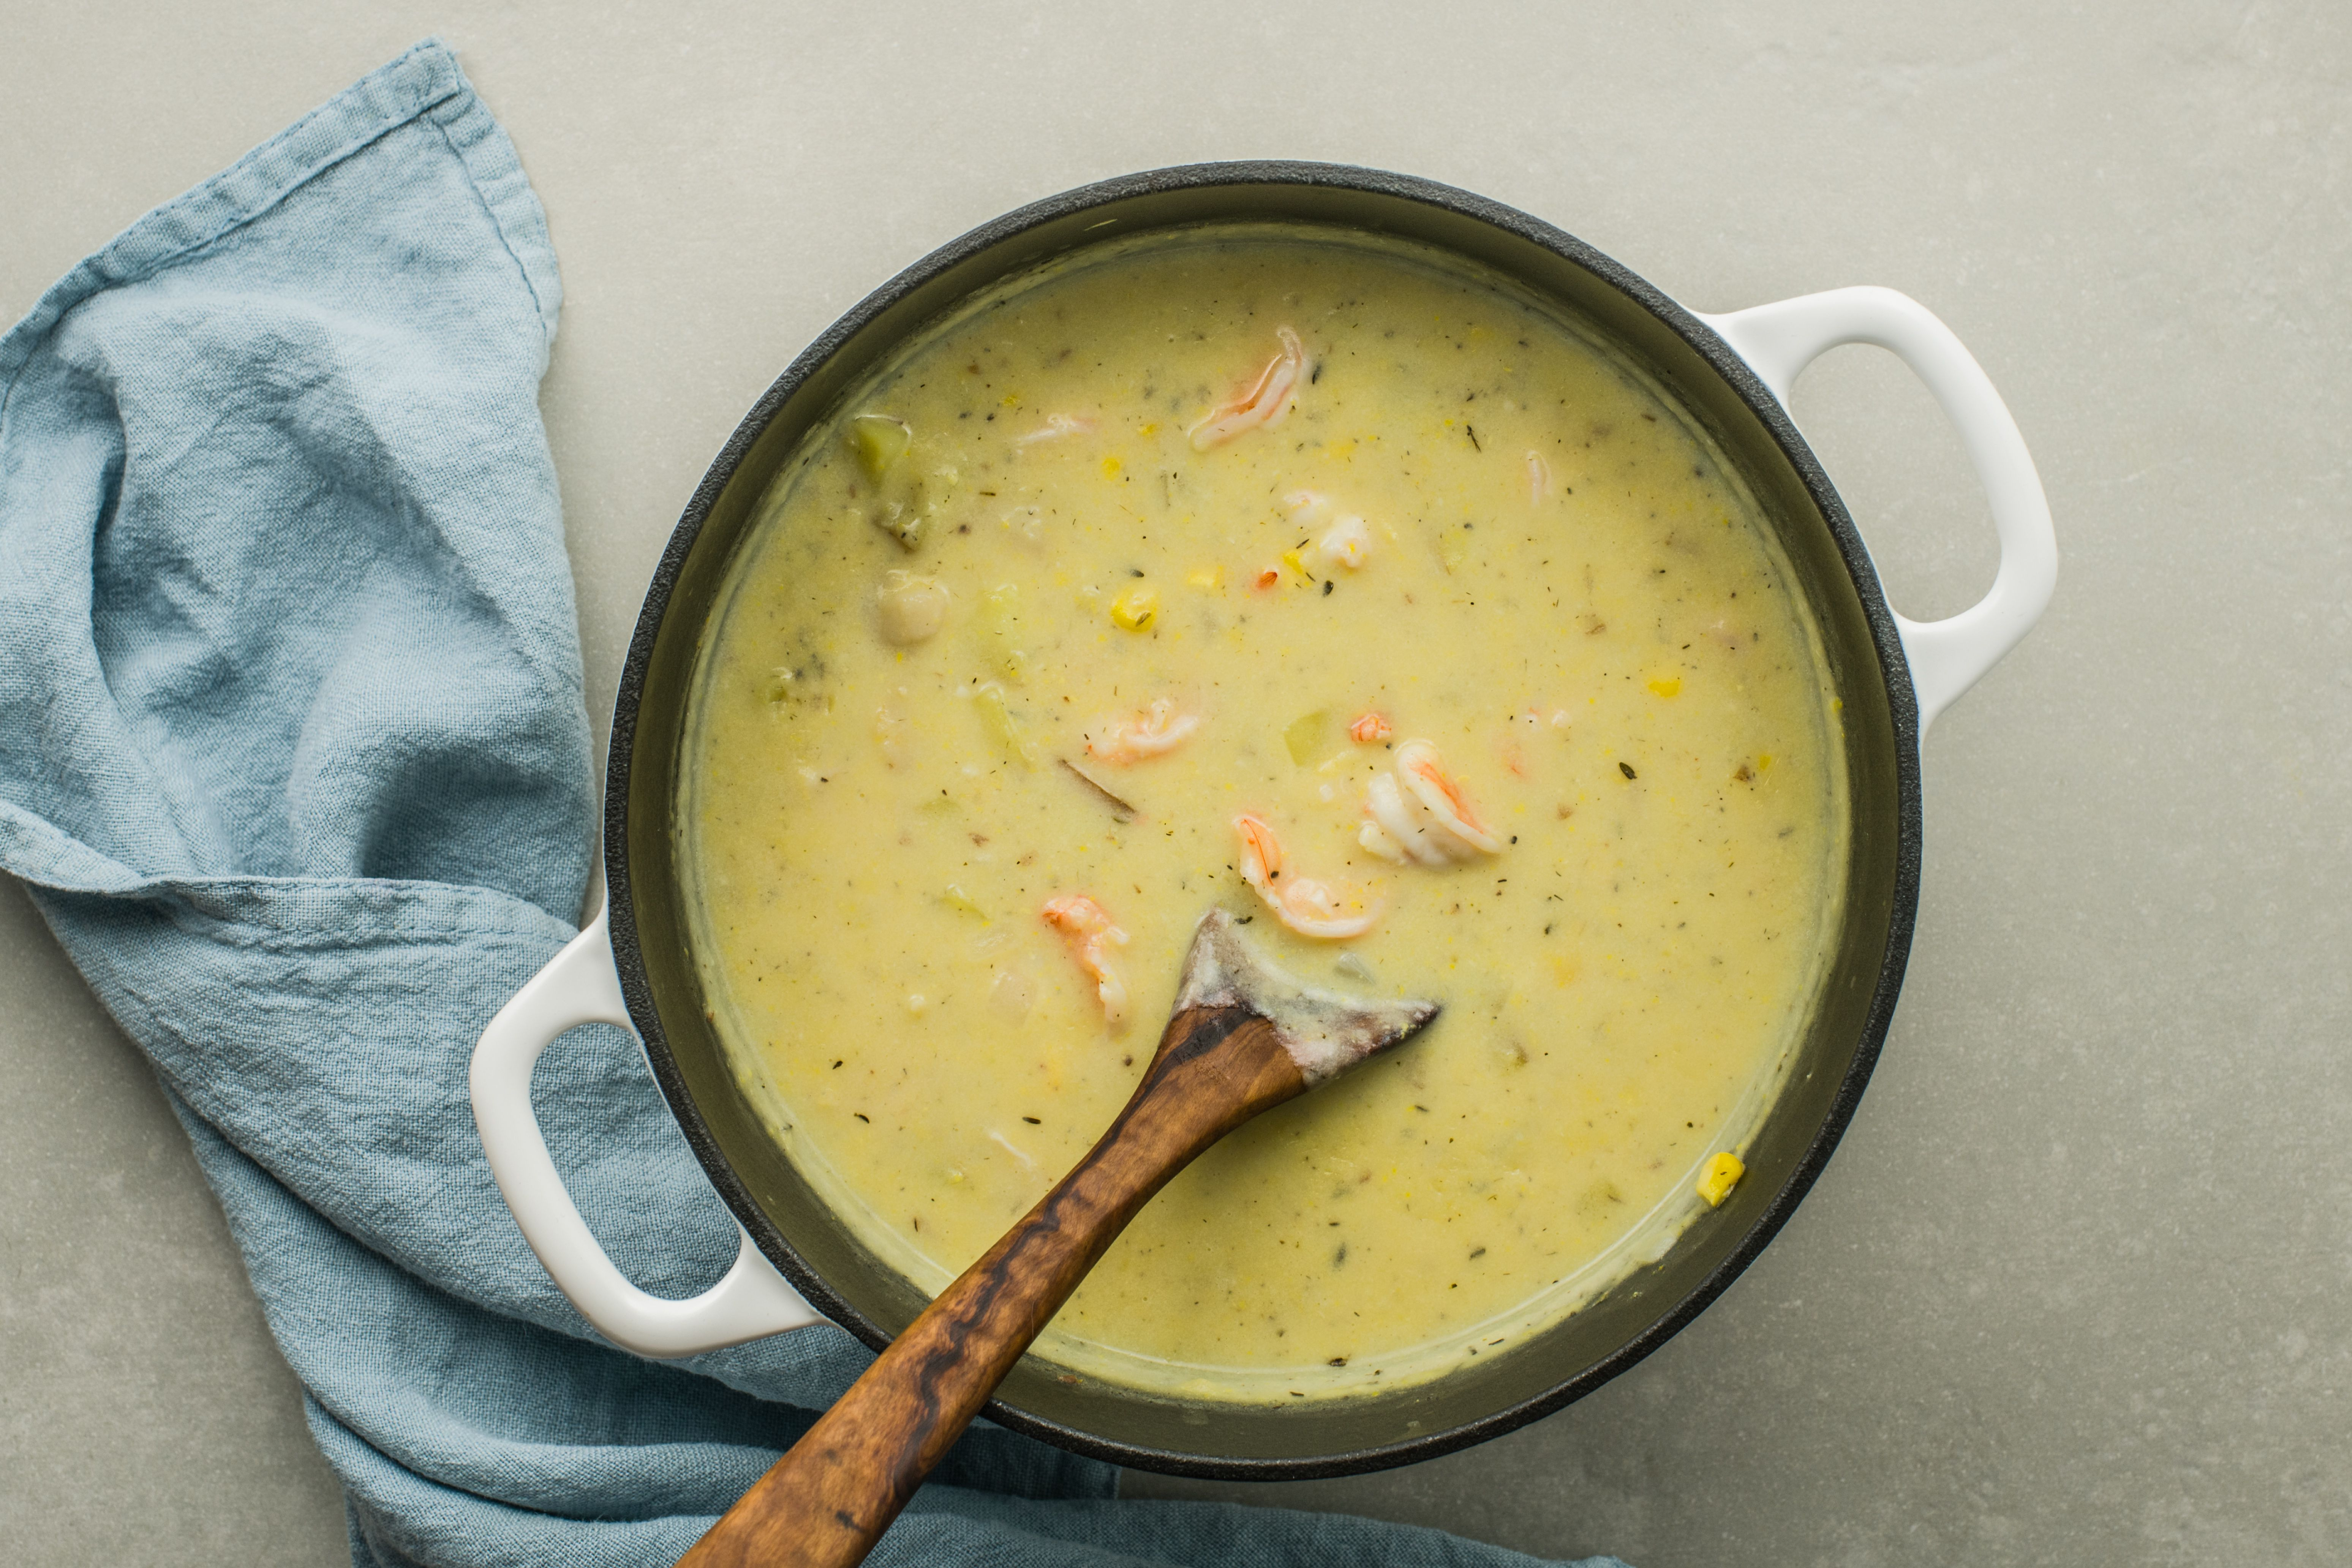 Return mixture to soup